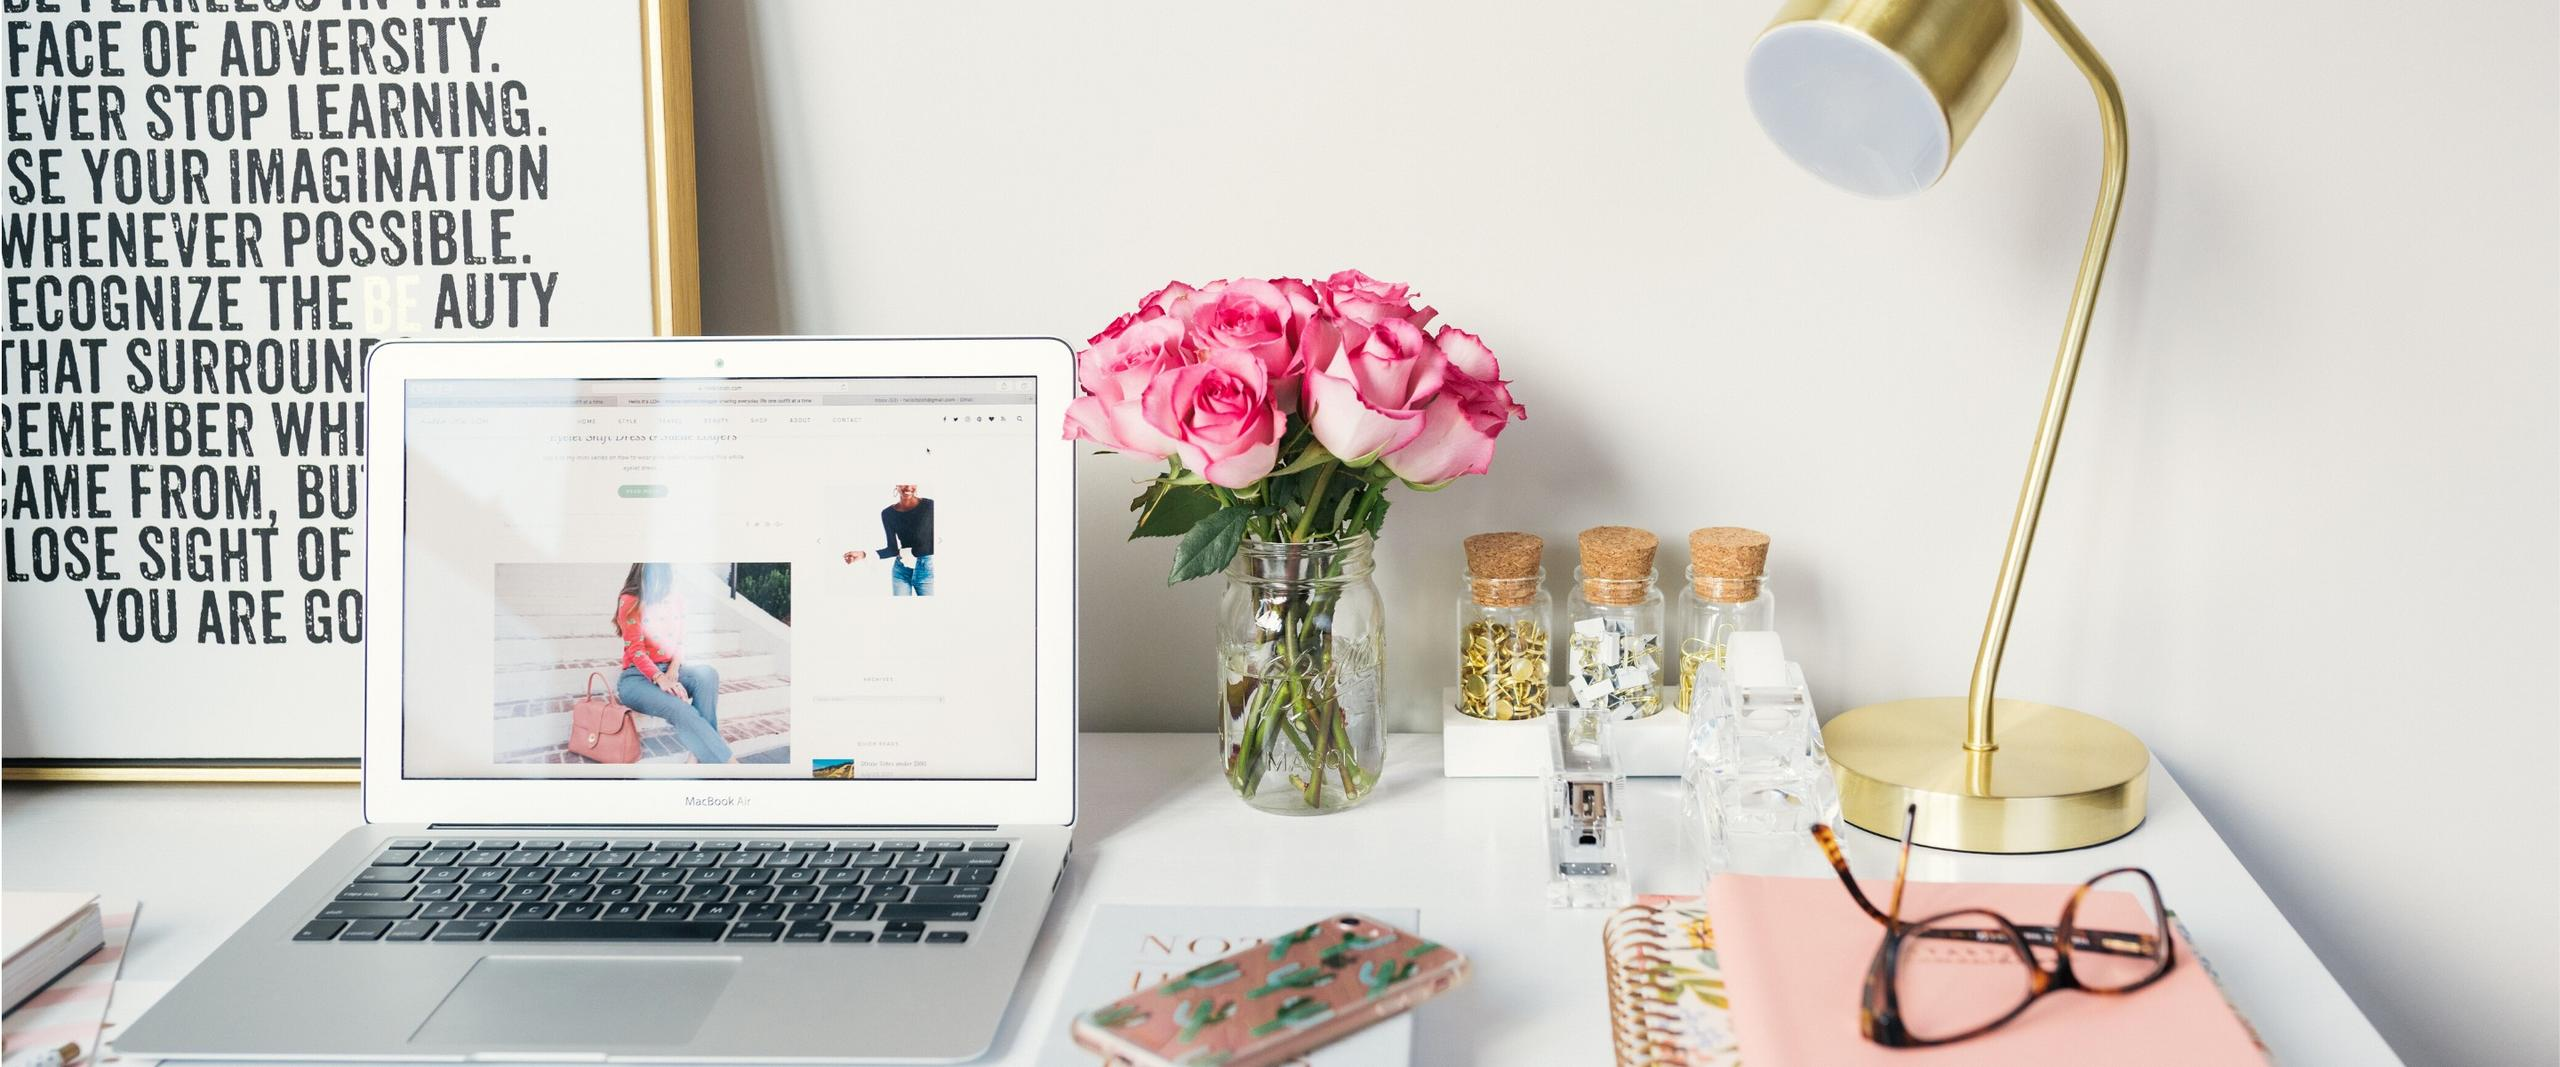 Desk with roses